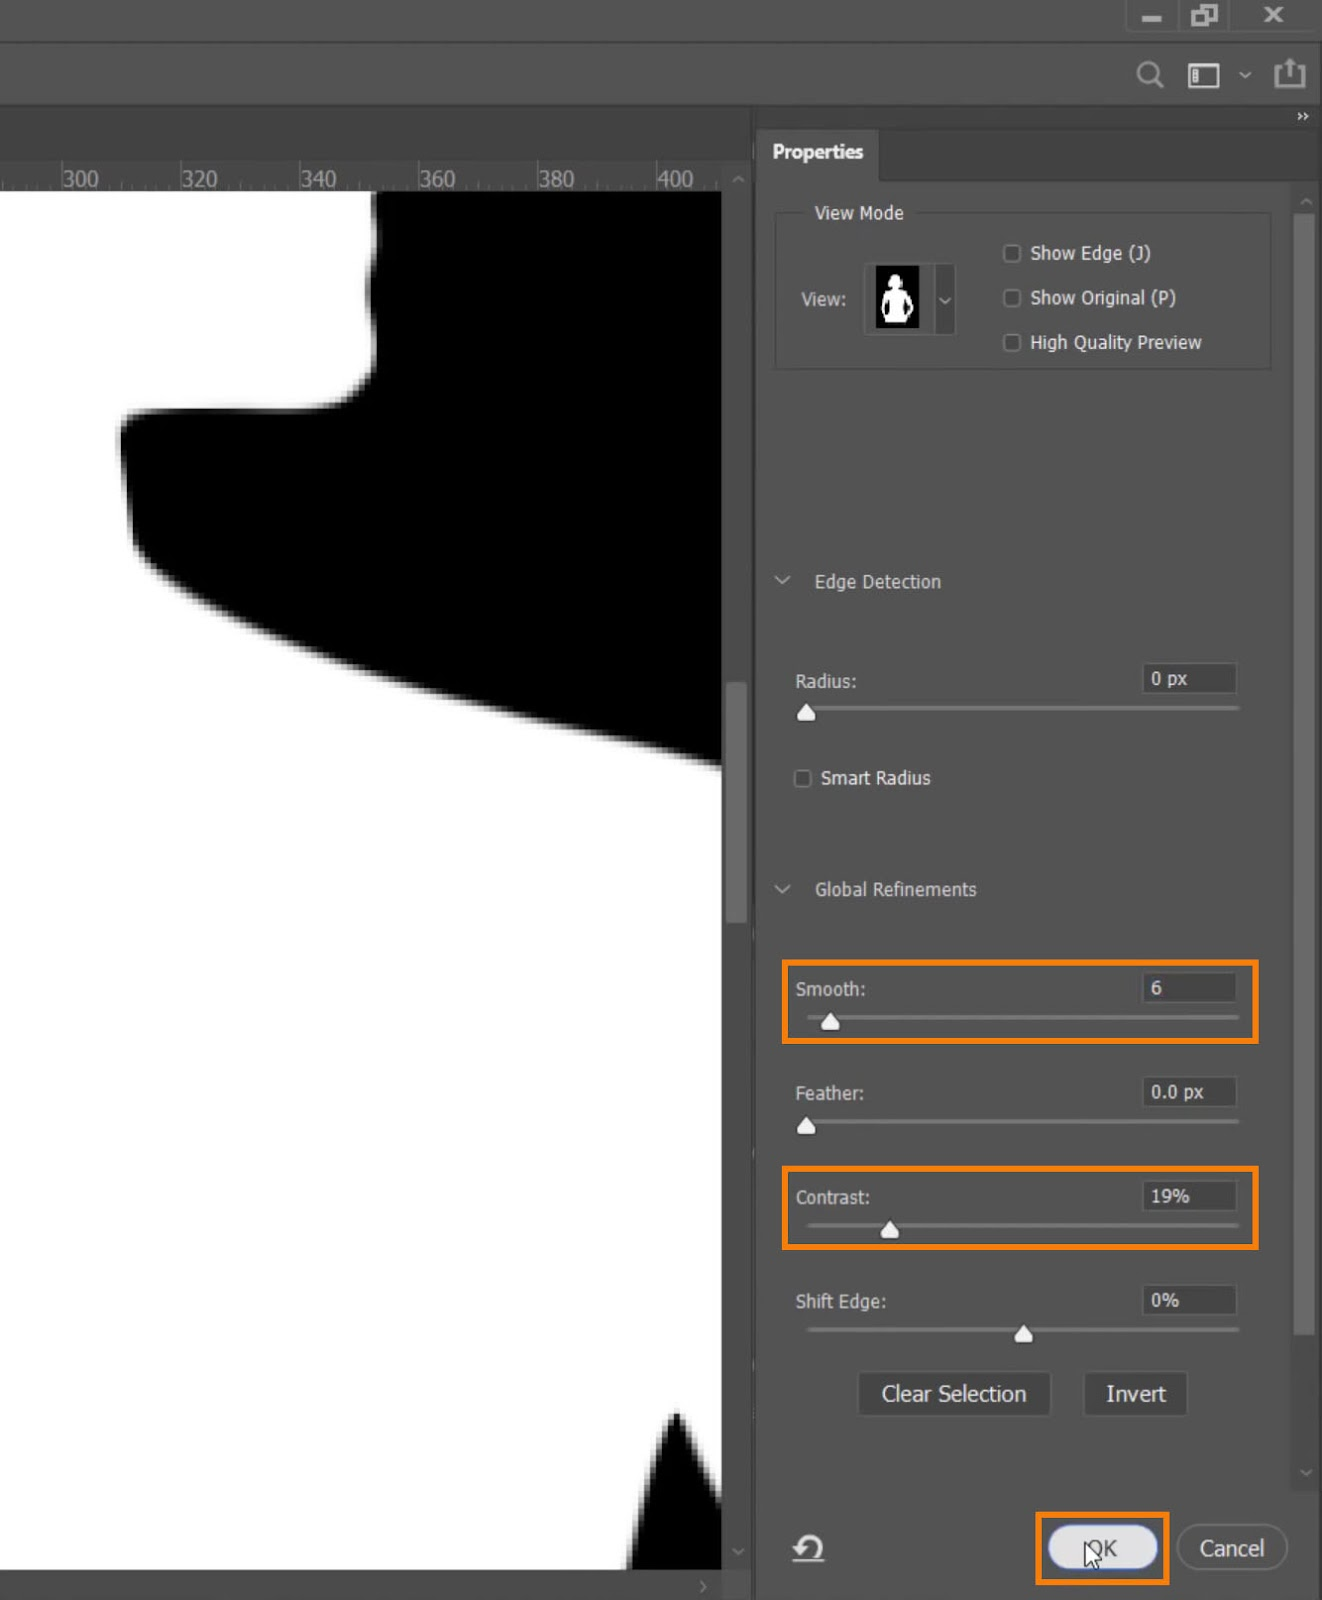 Adjust the Smooth and Contrast sliders